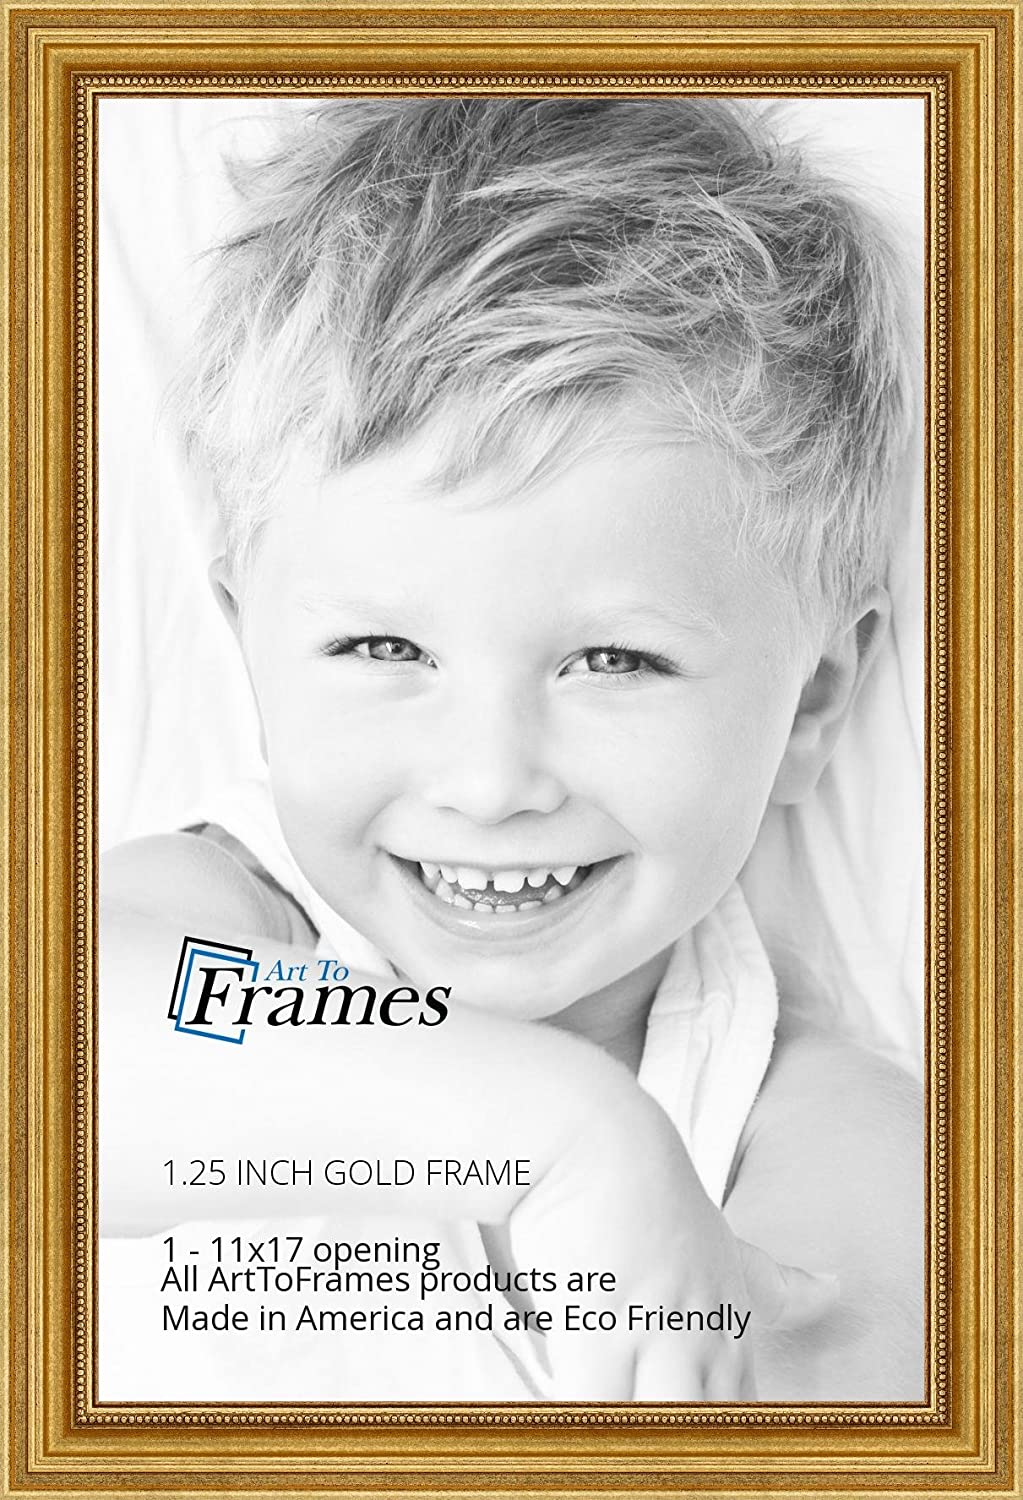 Amazon.com - ArtToFrames 11x17 inch Gold Foil on Pine Wood Picture ...